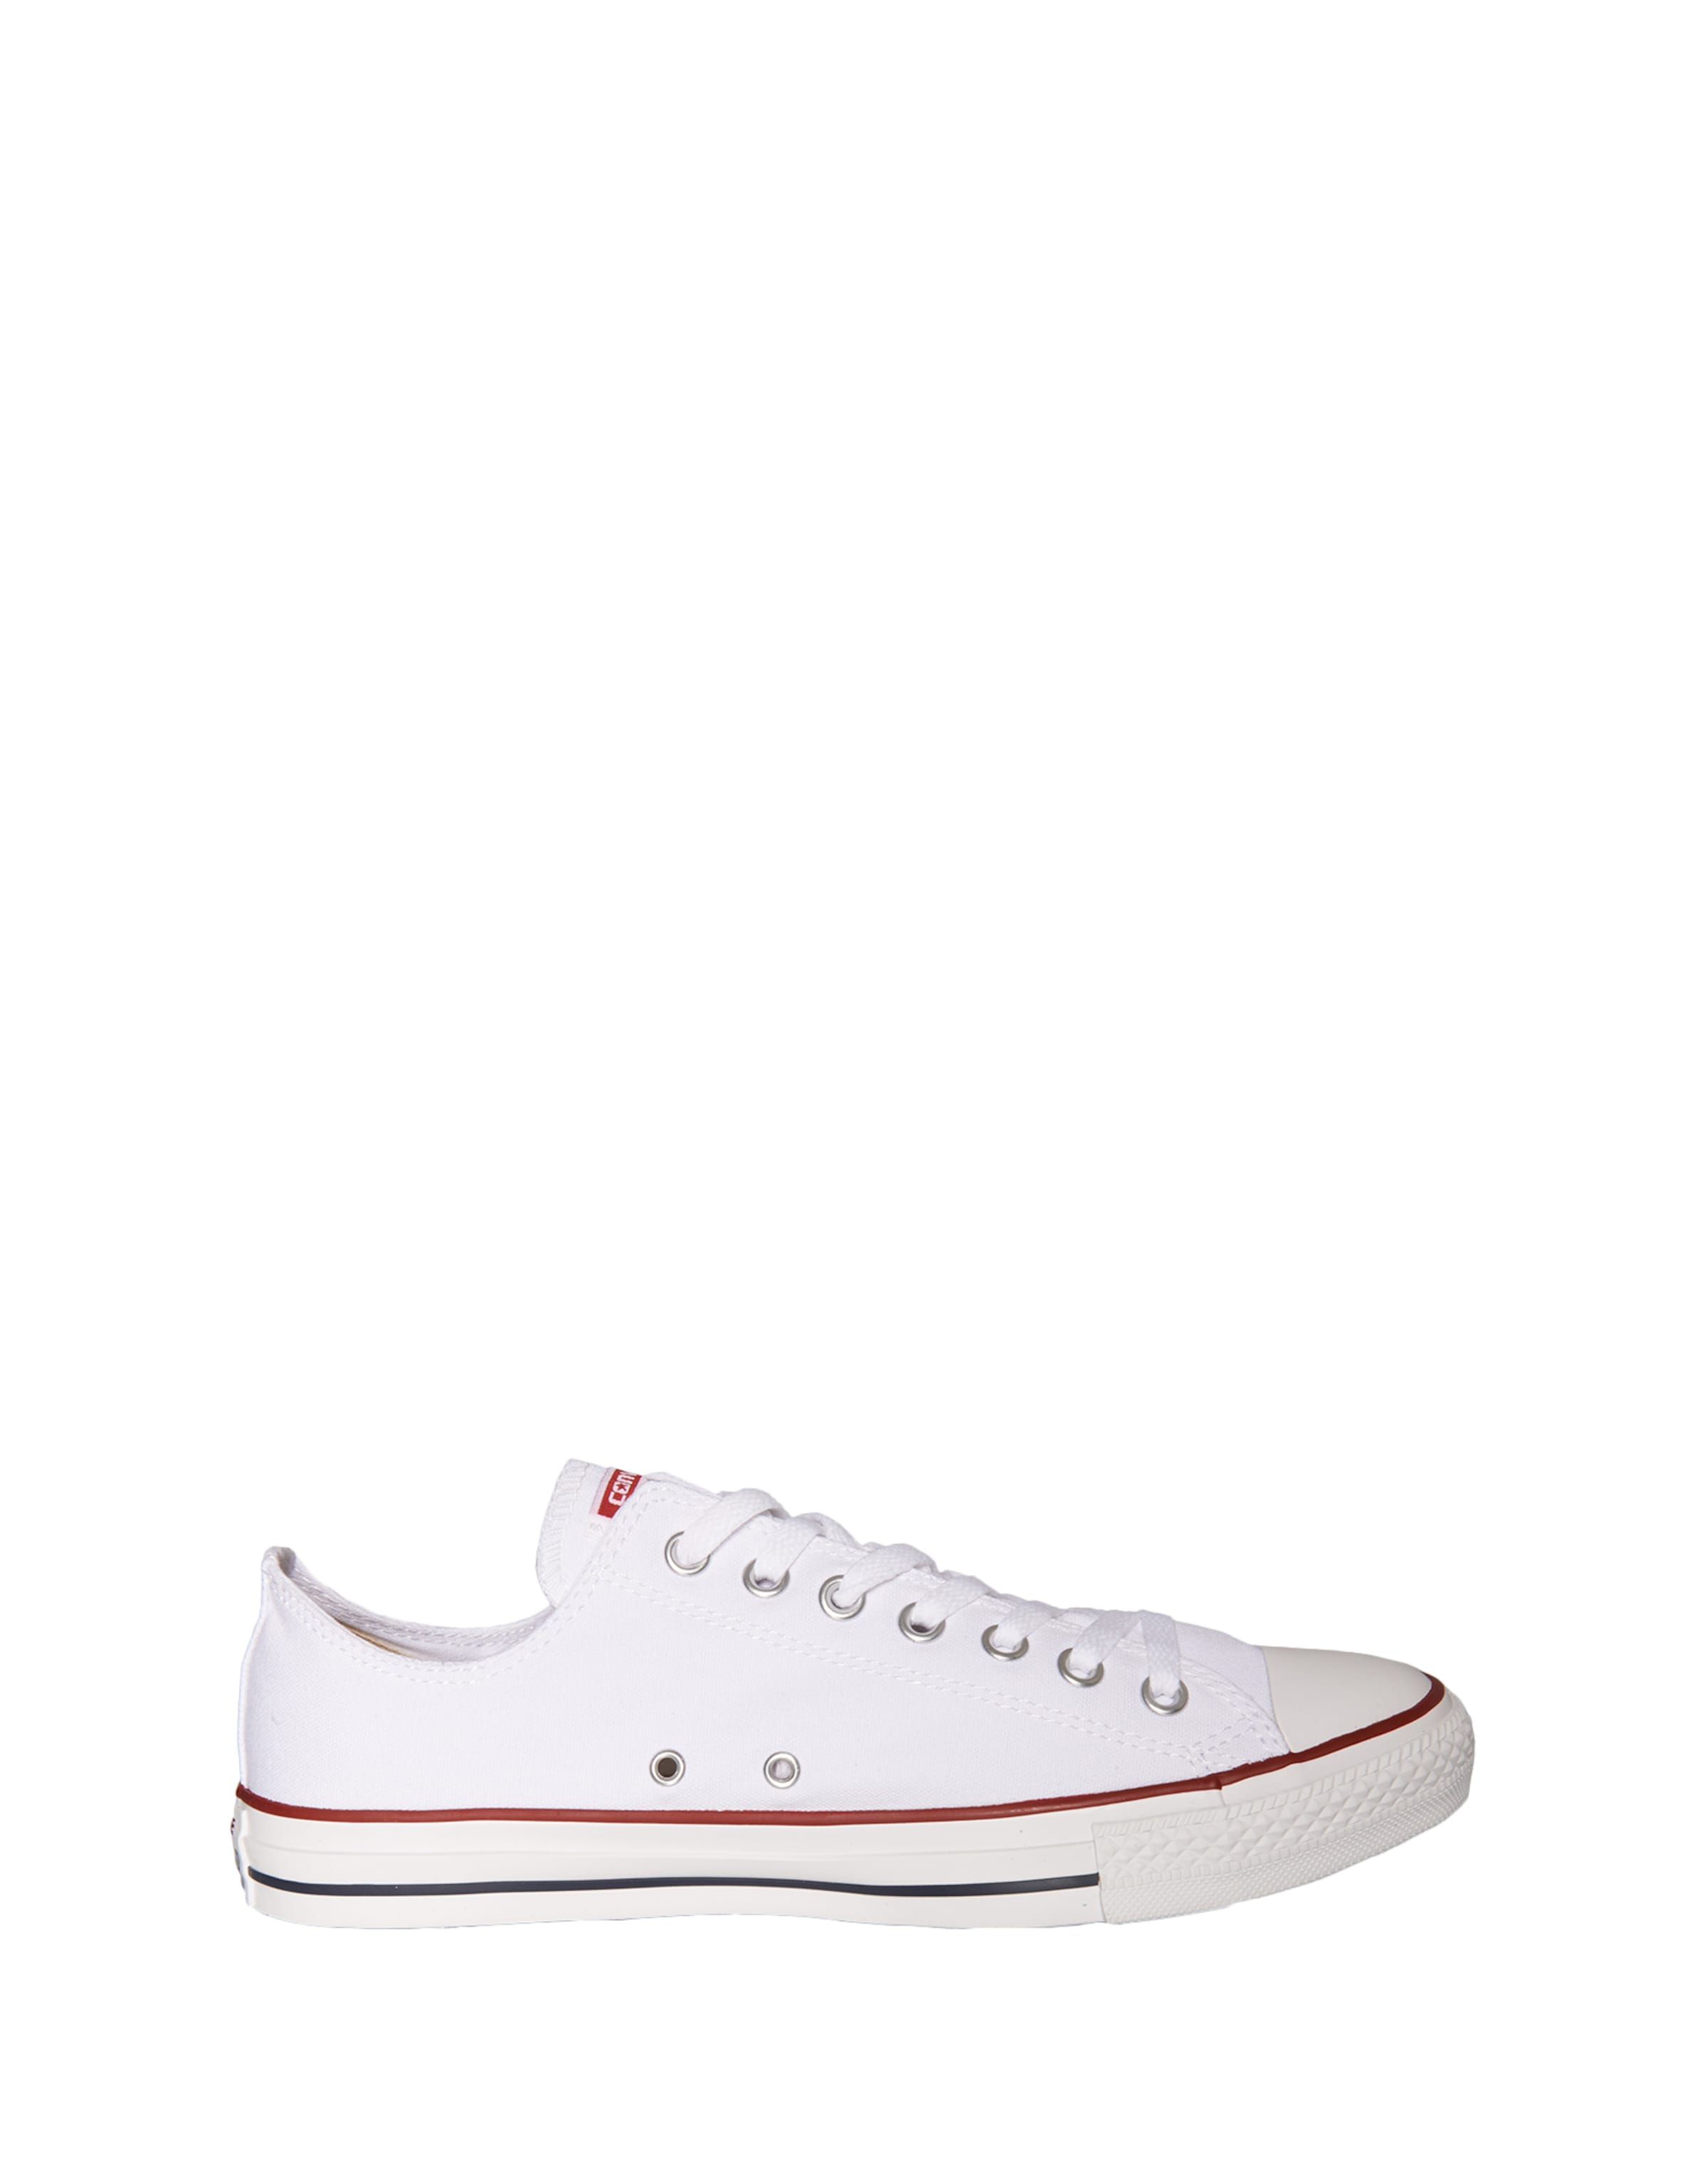 Taylor 'chuck Star Weiß Sneaker In Converse All Ox' DYE2eWH9I